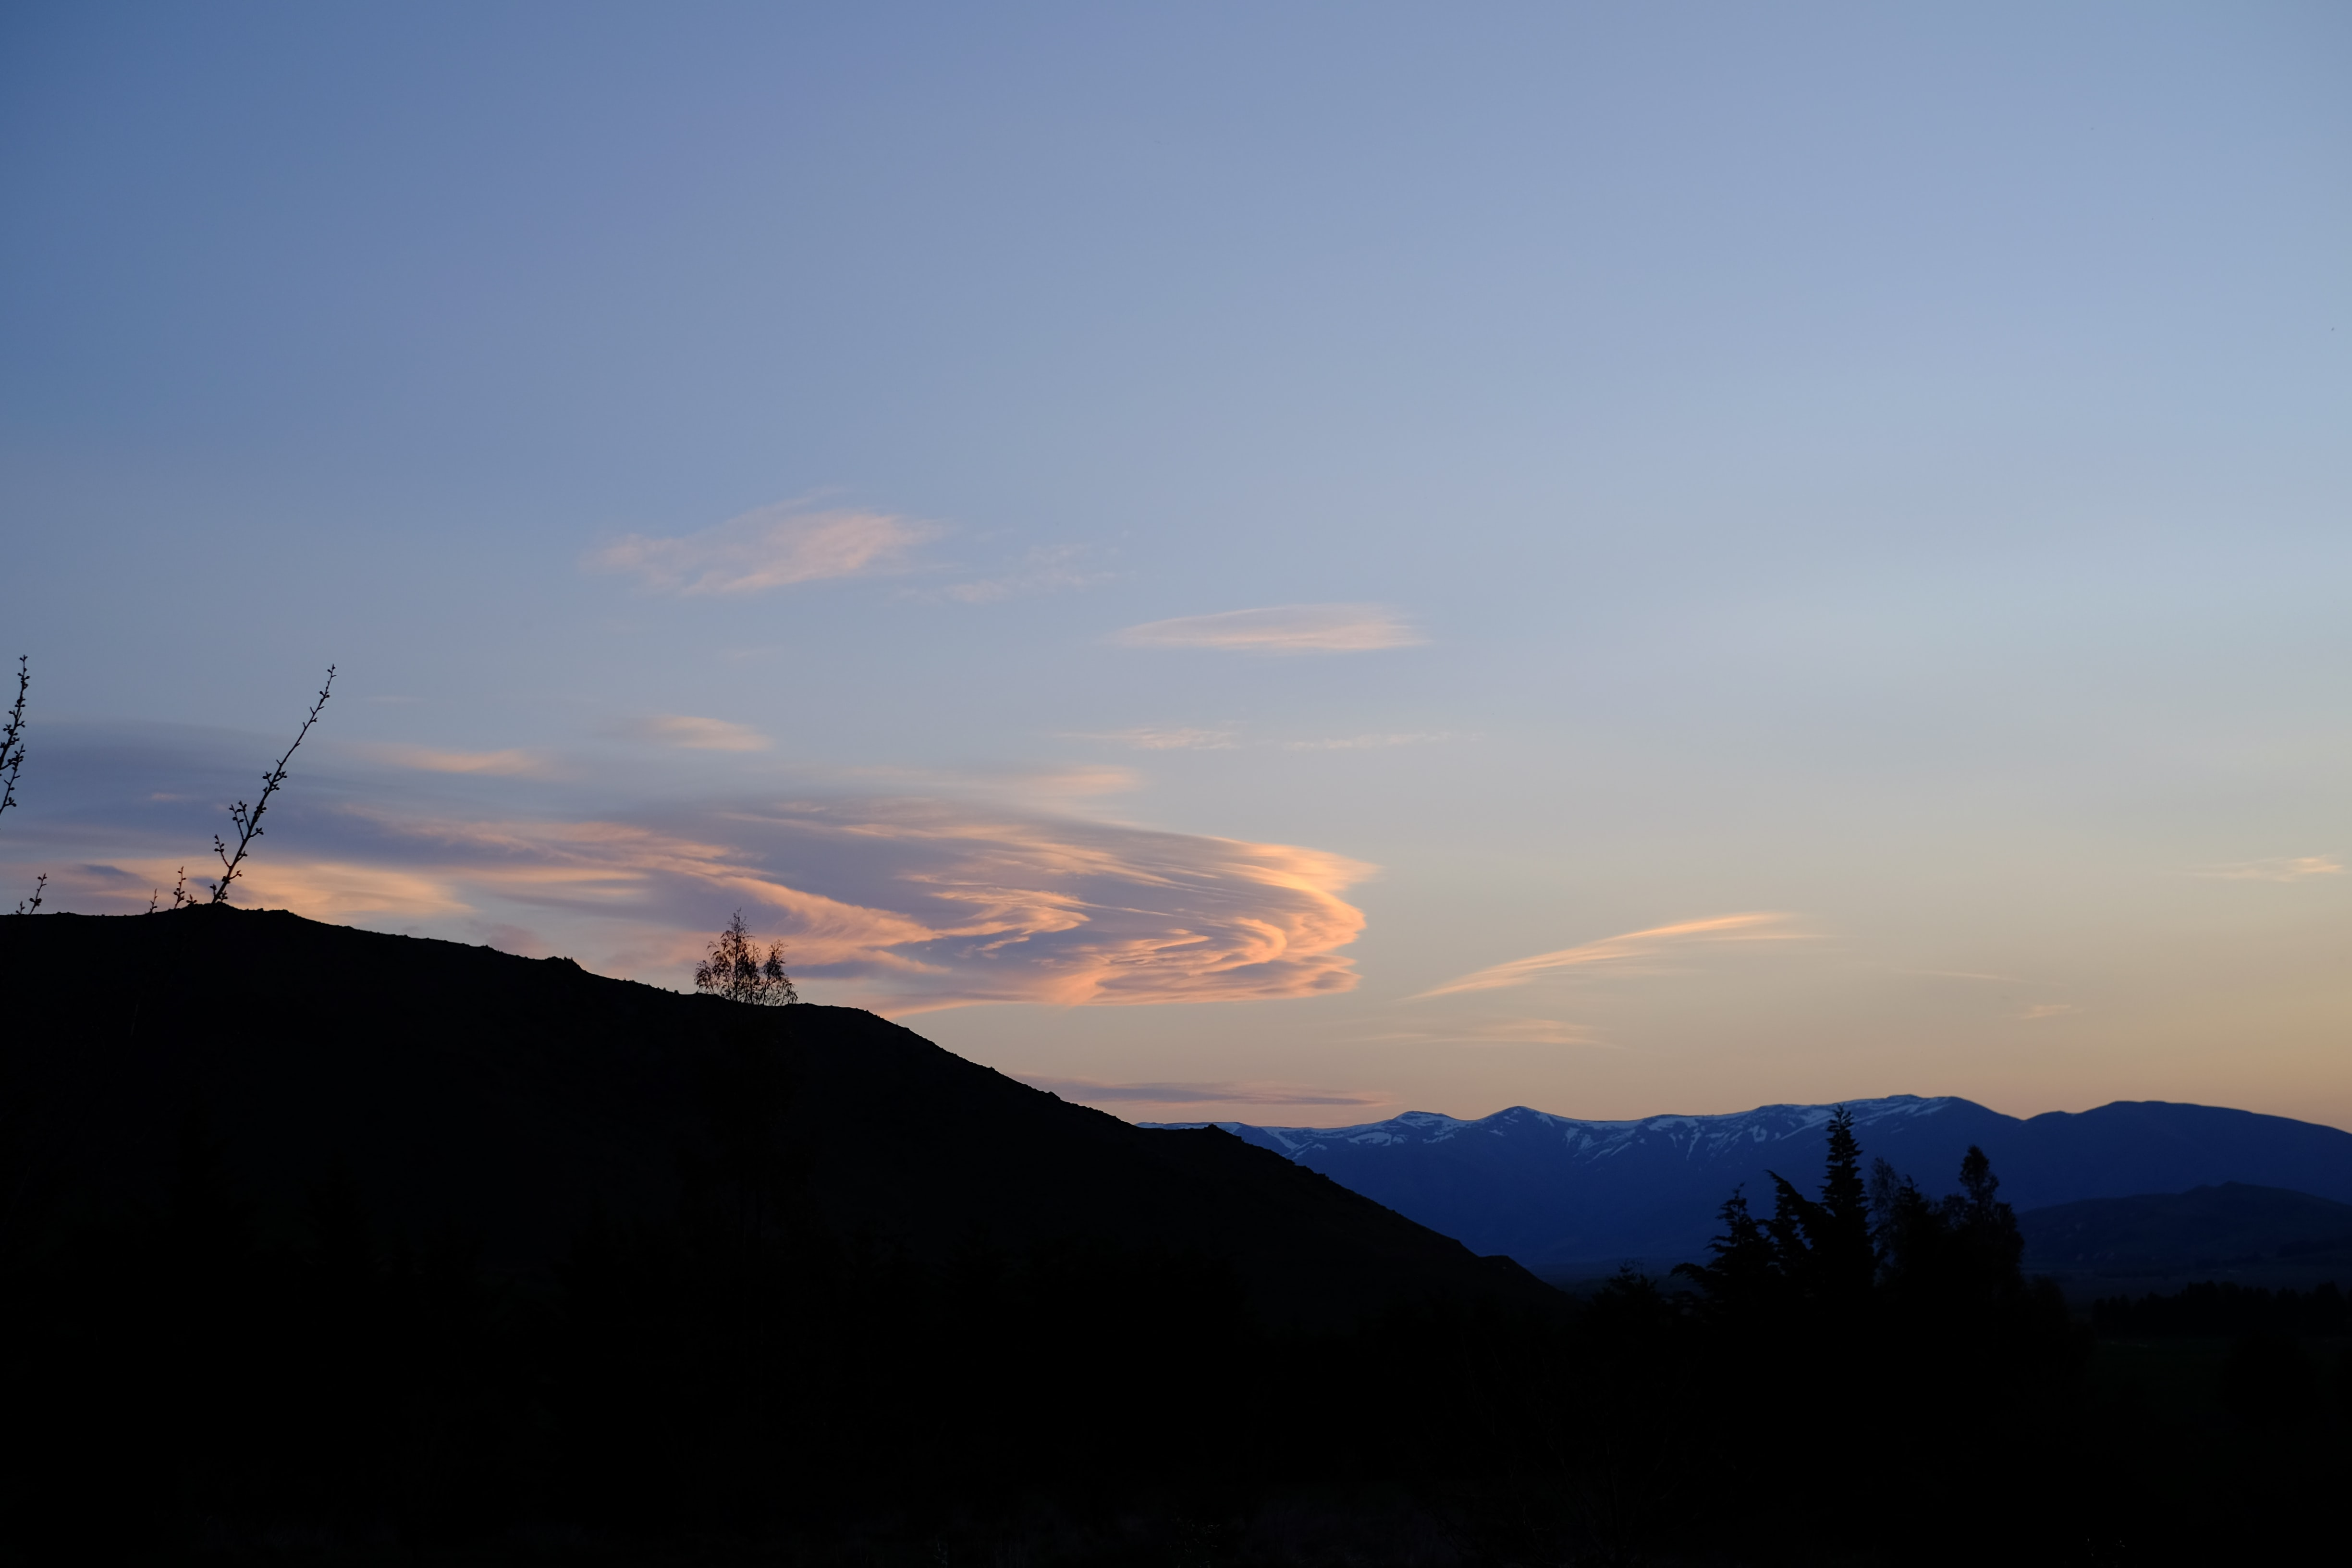 A silhouette of a mountain slope partly obscuring a tall mountain ridge on the horizon in the evening